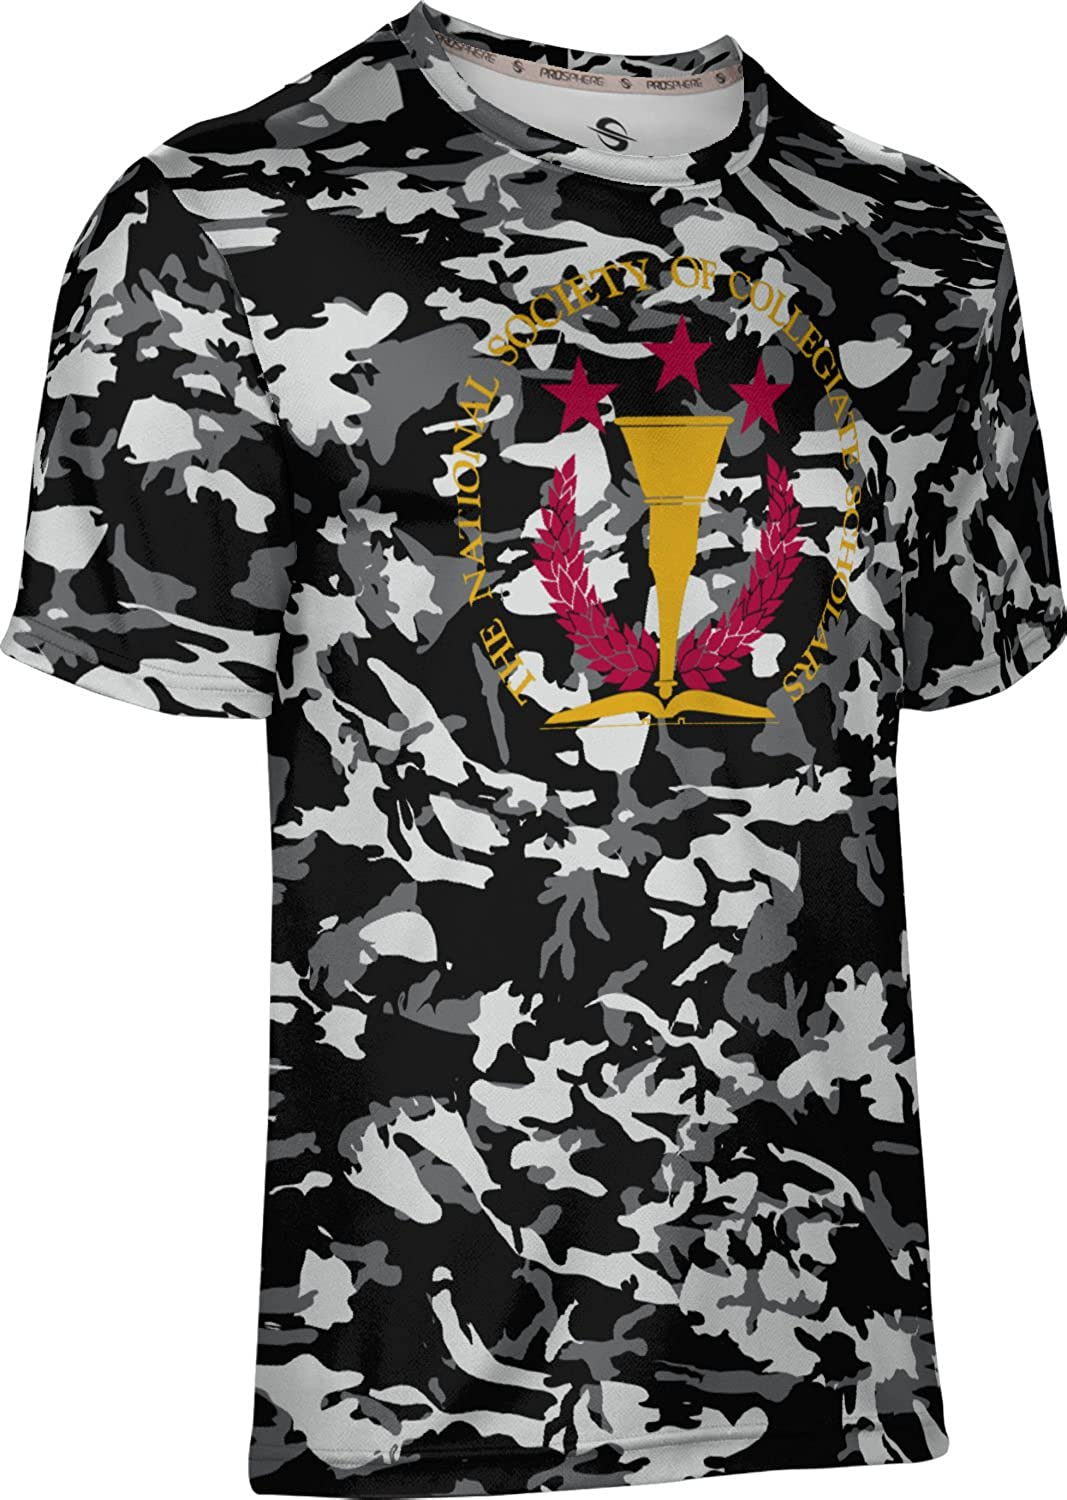 Camo The National Society of Collegiate Scholars Mens Performance T-Shirt CD537D46